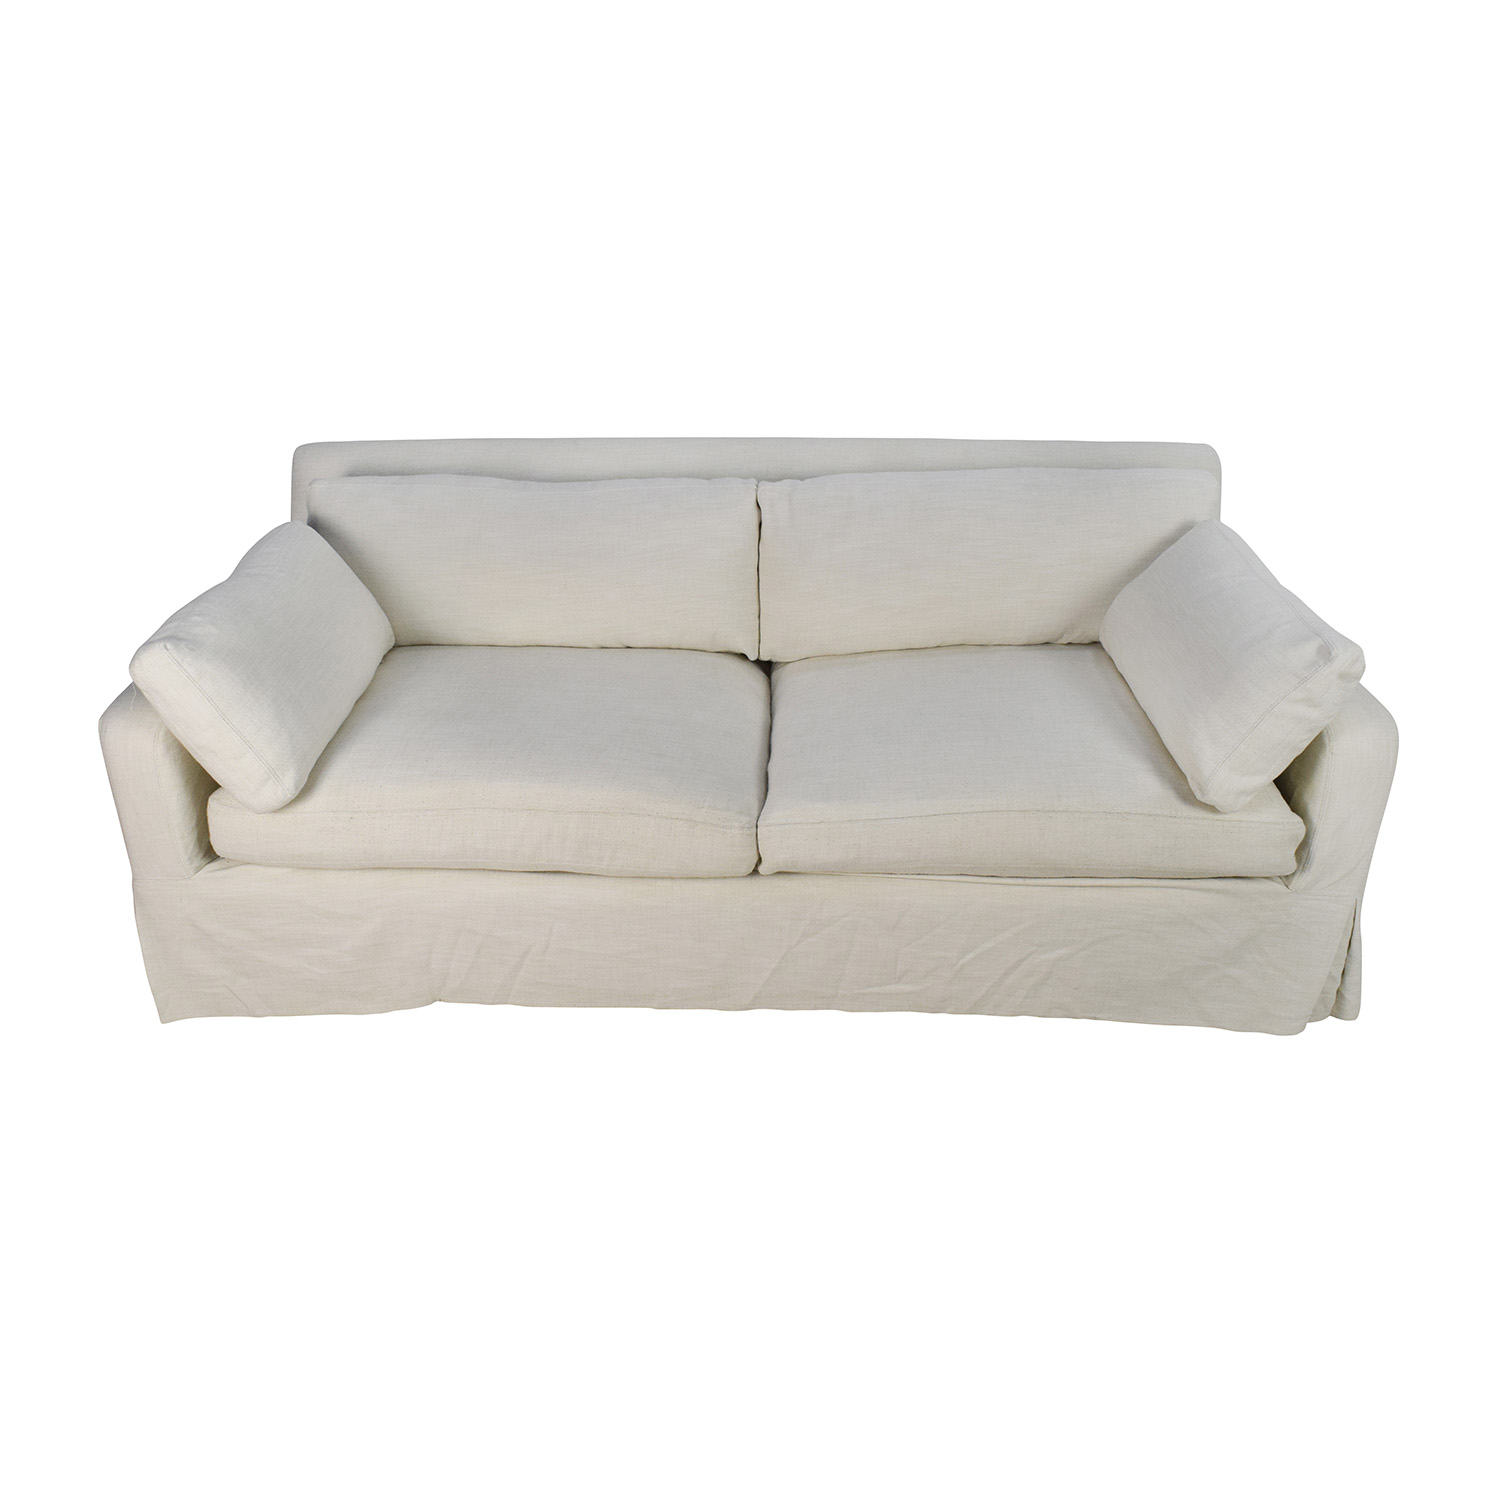 Restoration Hardware Restoration Hardware Belgian Track Arm Slipcovered Sofa on sale